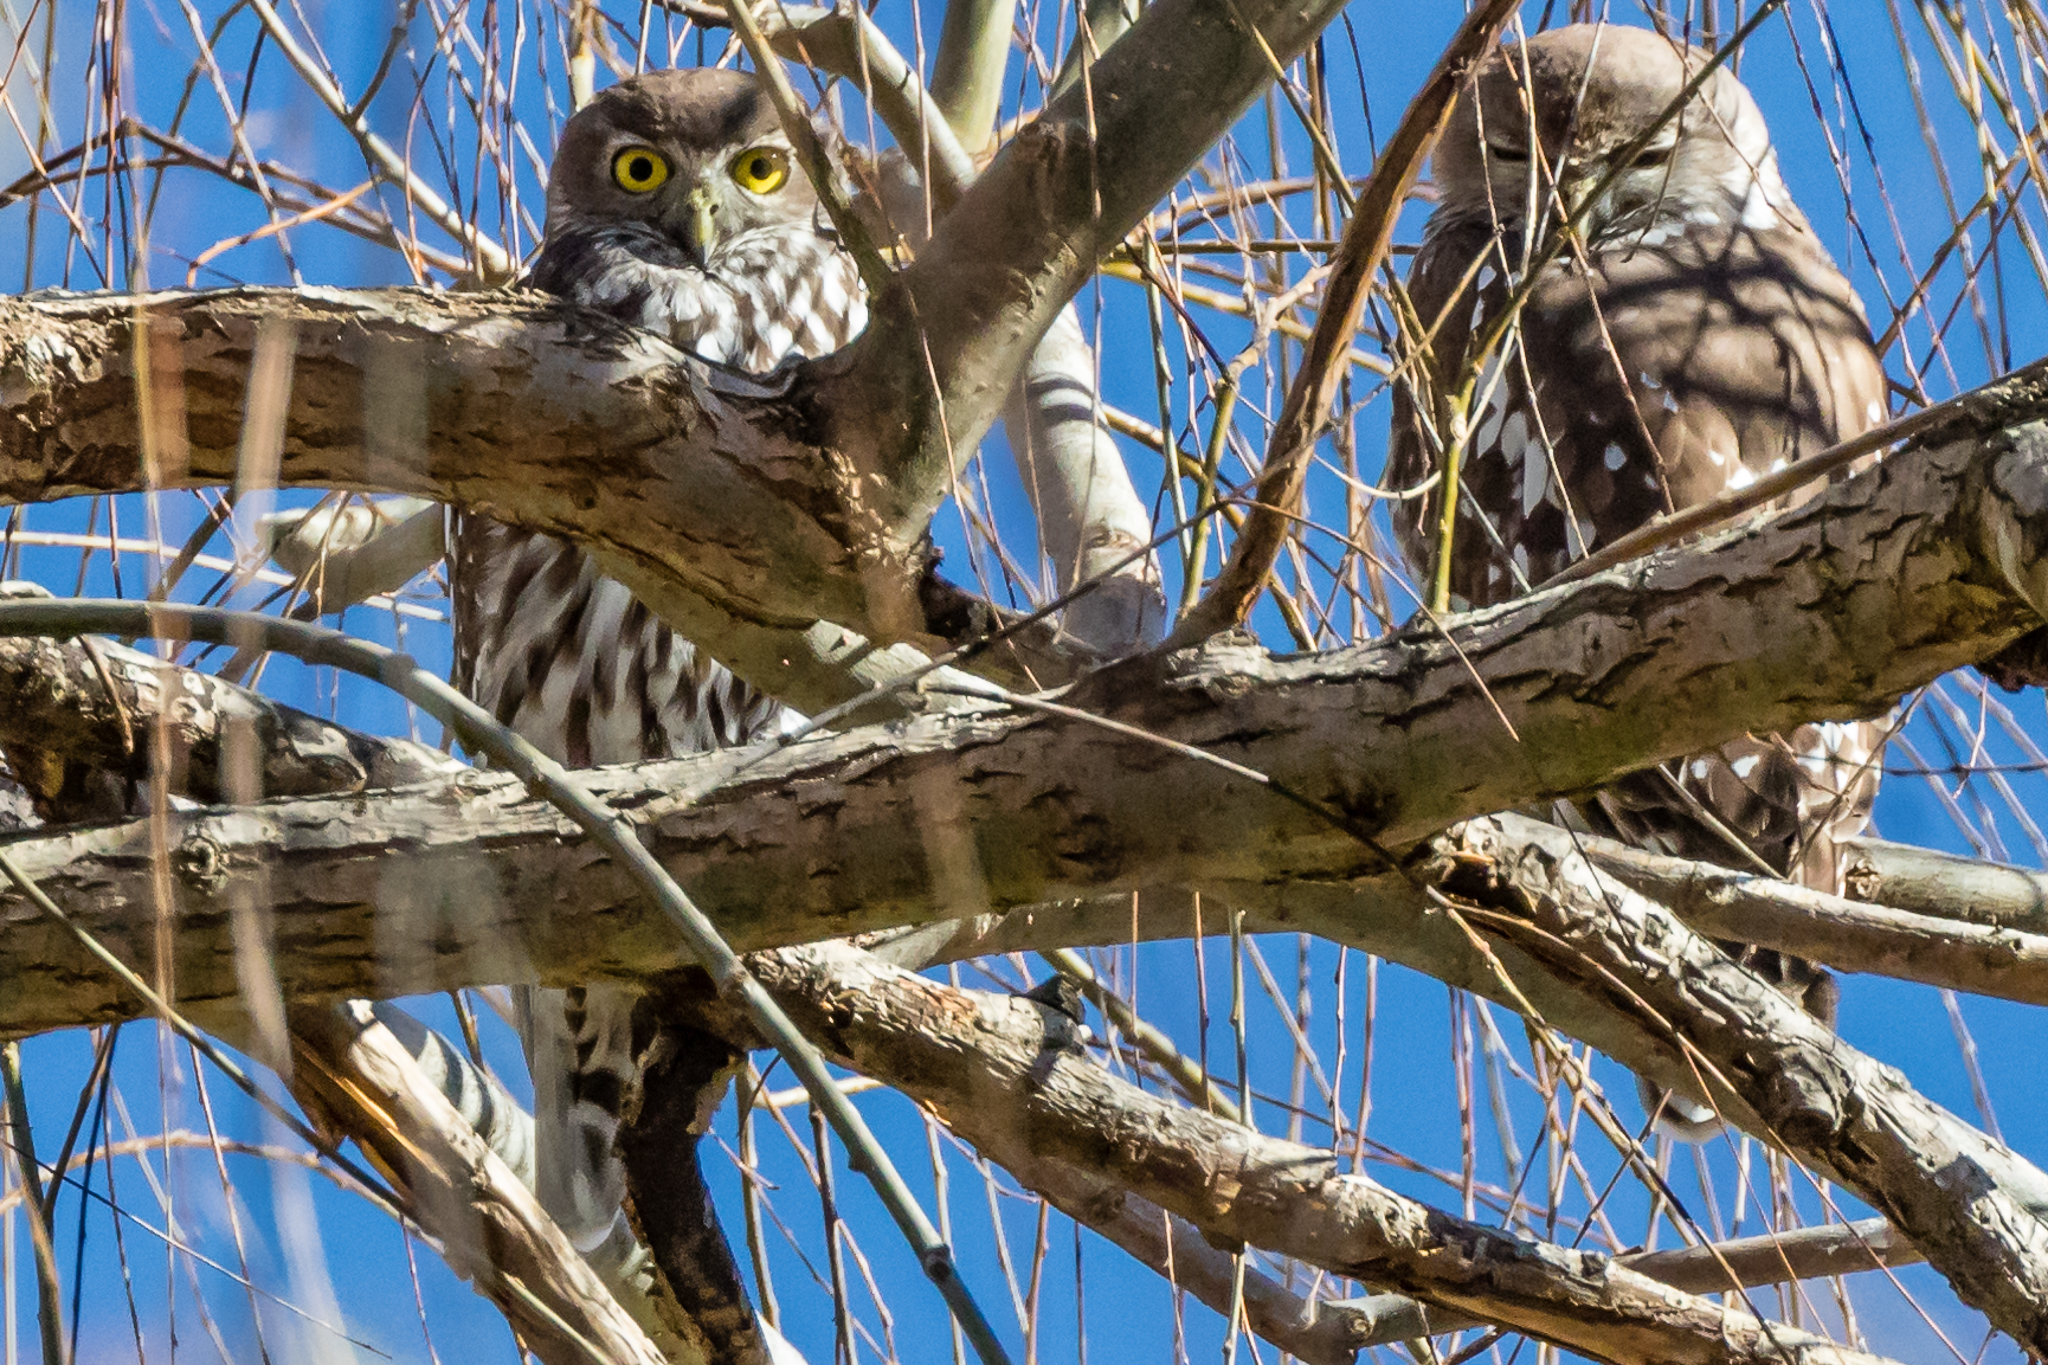 """The Barking Owl is rarely seen but their distinctive """"little dog"""" barking call may be heard at night.They frequent where forest meets farmland especially in river side trees. The two owls above are roosting close to a small stream that will provide their fare of small animals, birds, reptiles and insects."""